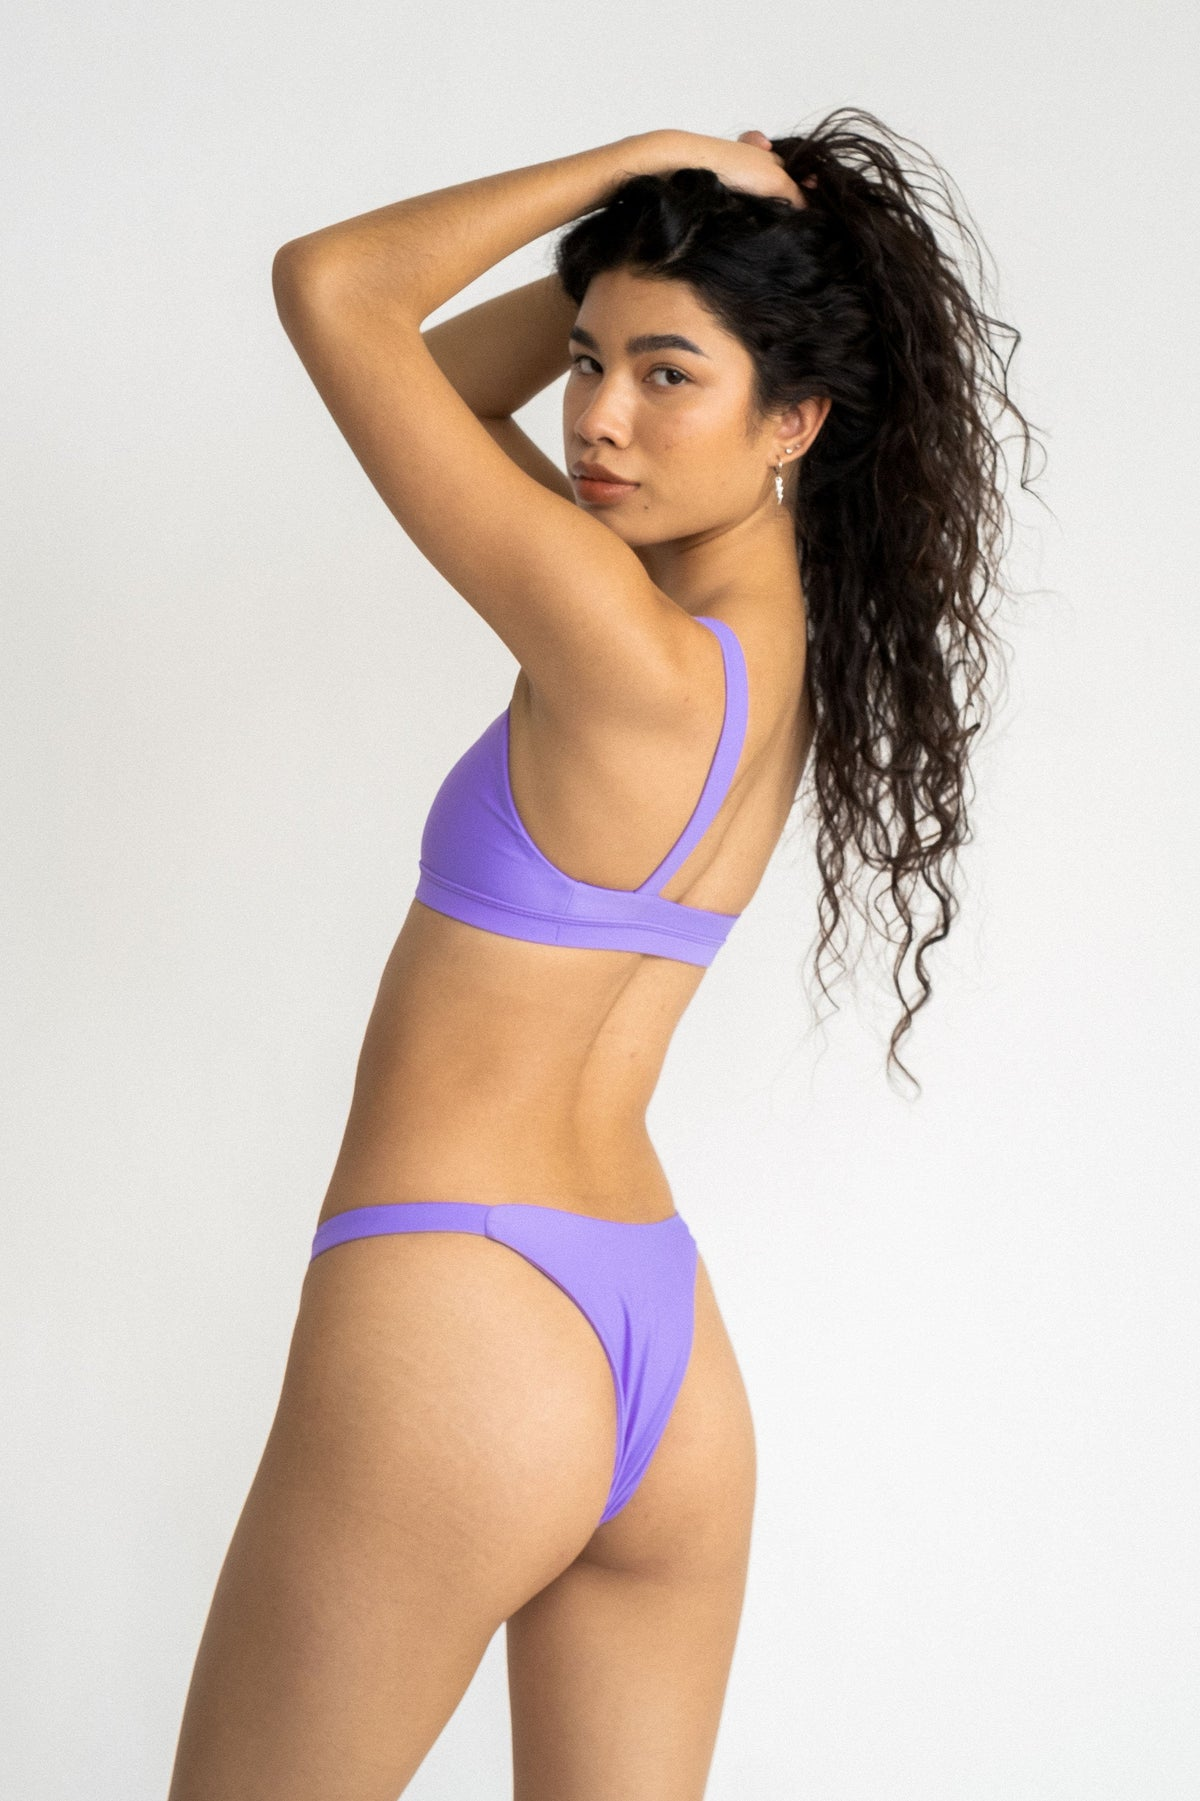 A woman turned to the side looking over her shoulder with her hands in her hair wearing bright purple high cut bikini bottoms and a matching bright purple bikini top.